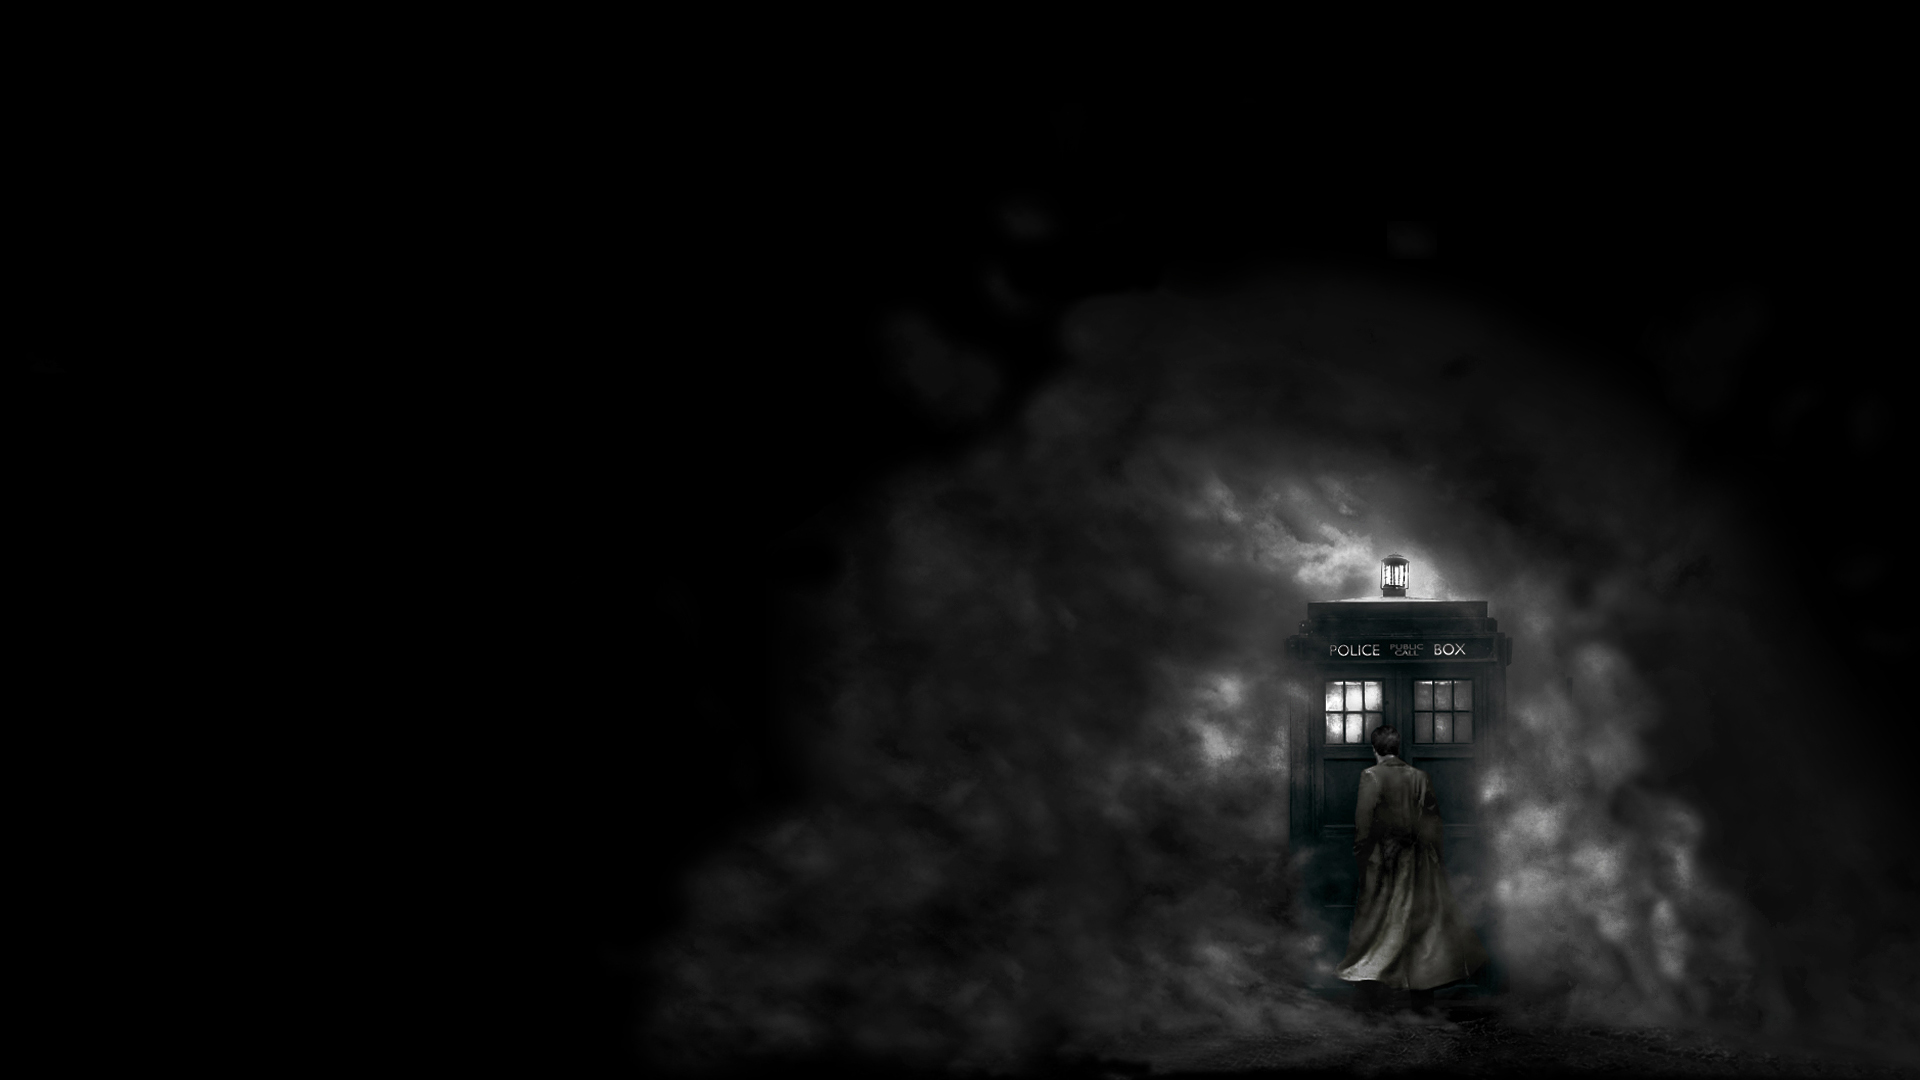 Doctor Who Wallpaper 1920x1080 Doctor Who Background V10 Doctor 1920x1080